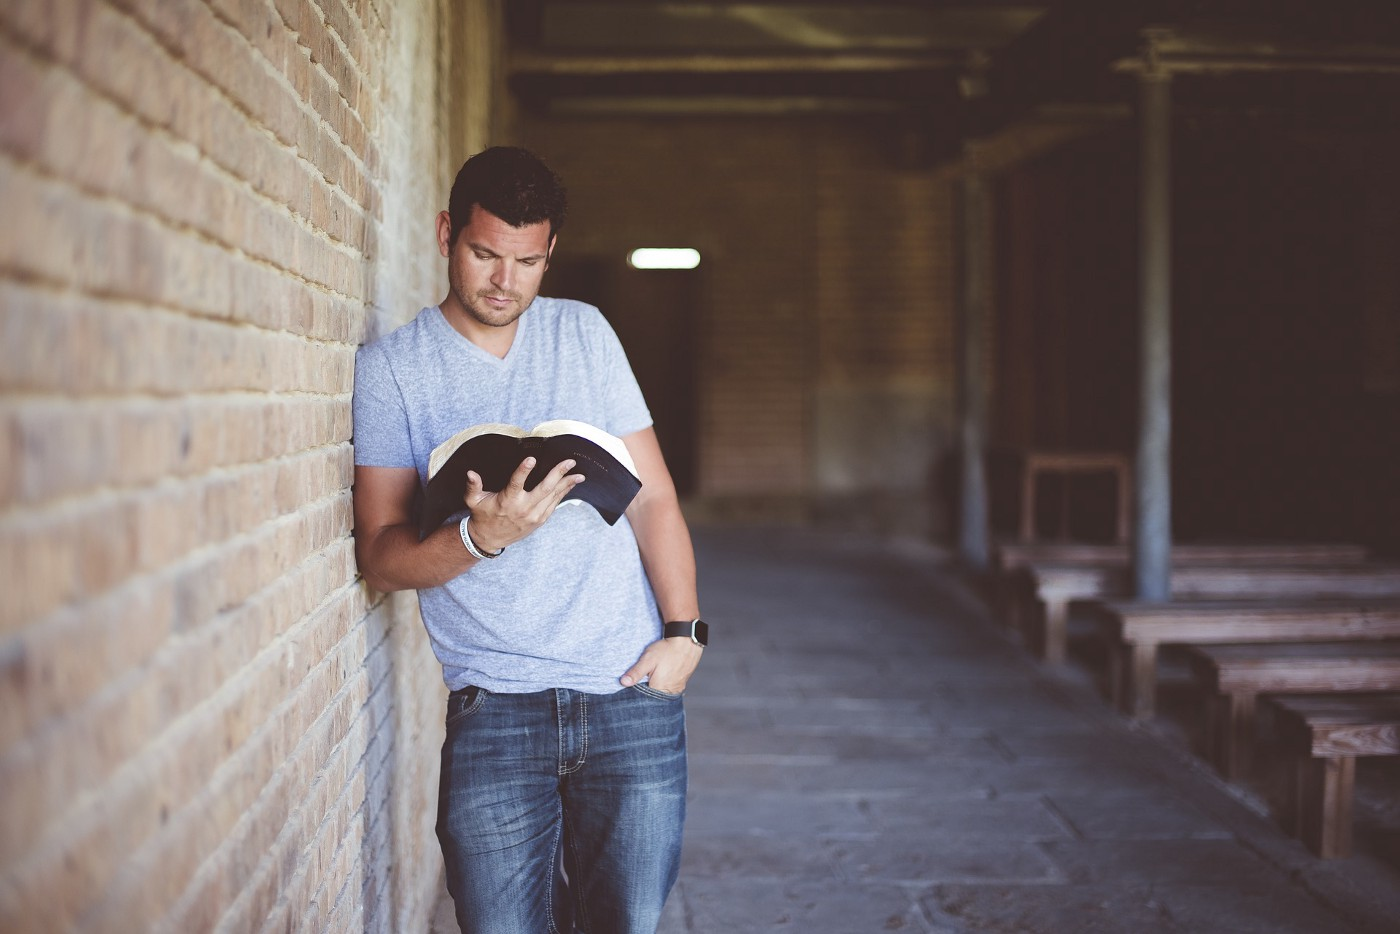 A man leaning on a brick wall reading a book.